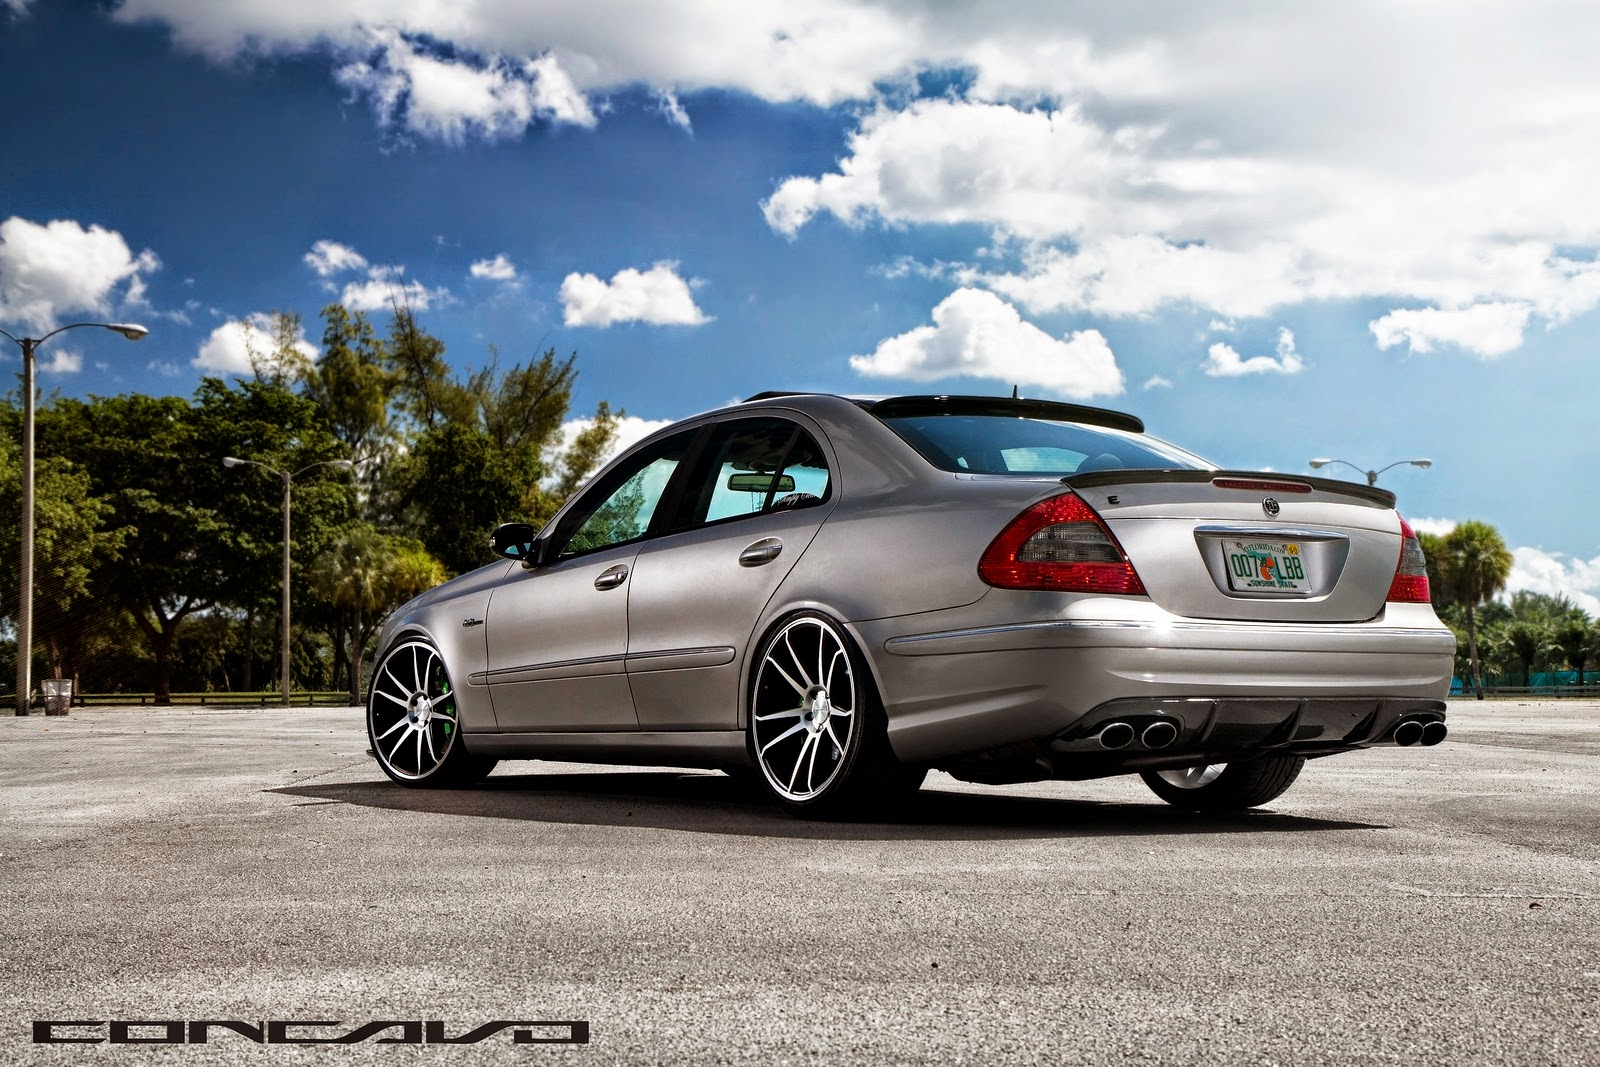 Mercedes benz w211 e500 on concavo cw 5s benztuning for Mercedes benz wheel